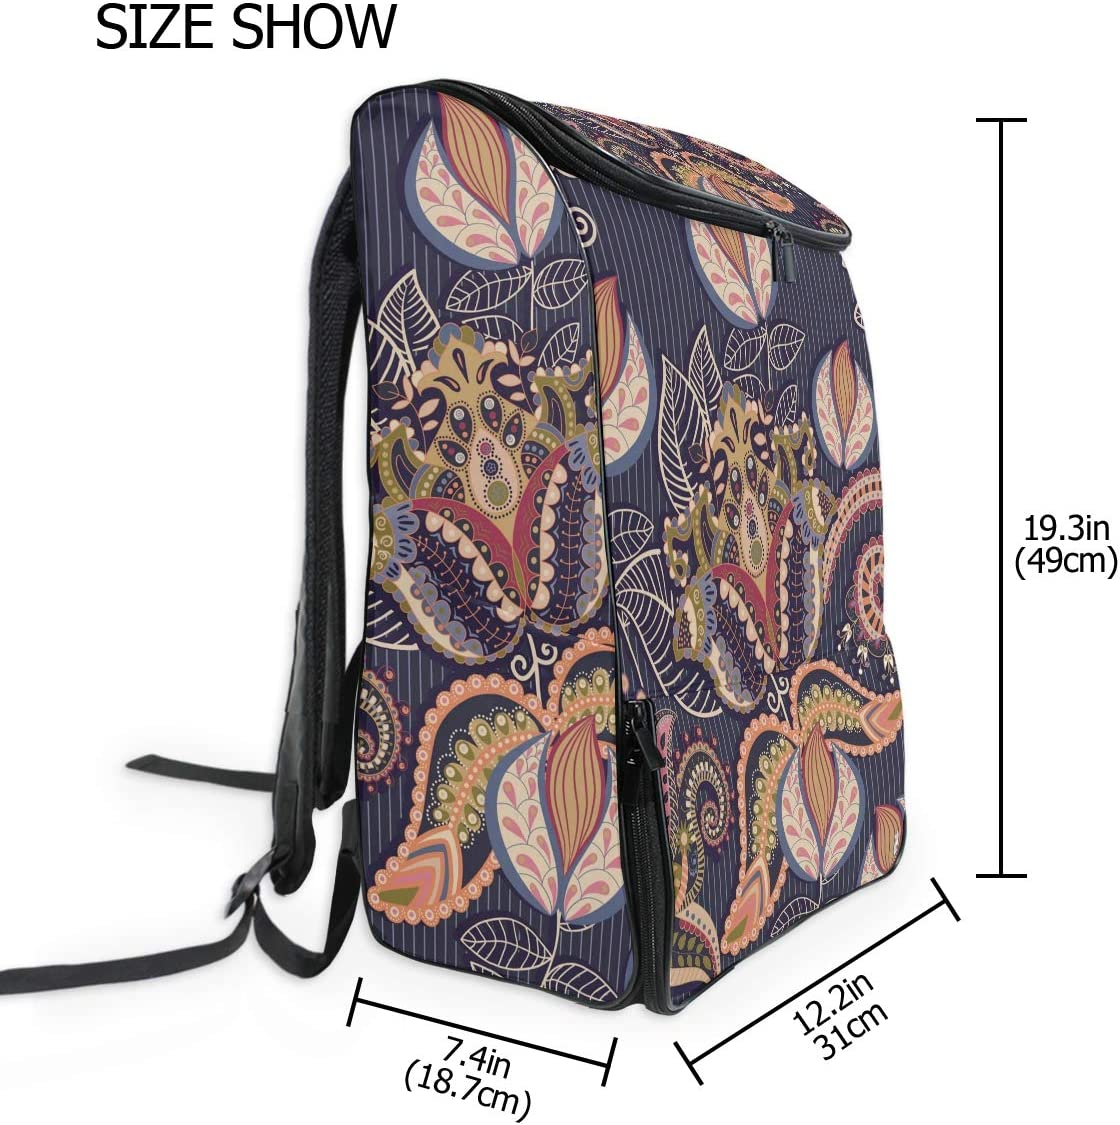 MONTOJ Travel Gear Laptop Backpack Luxurious Arty Flower Pattern Carry-On Travel Backpack